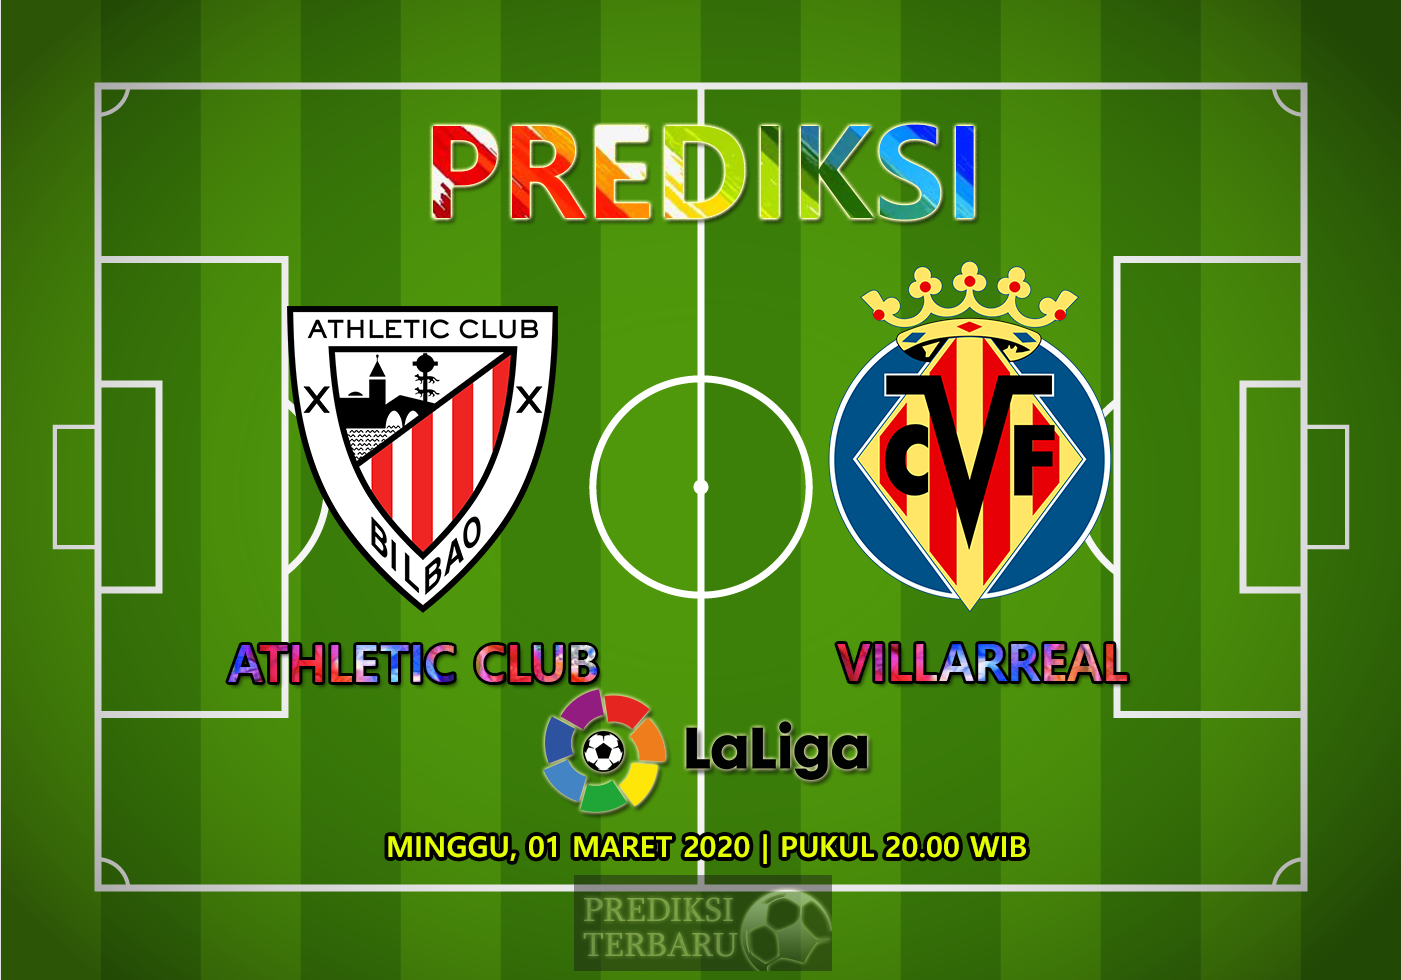 Prediksi Athletic Club Vs Villarreal Minggu 01 Maret